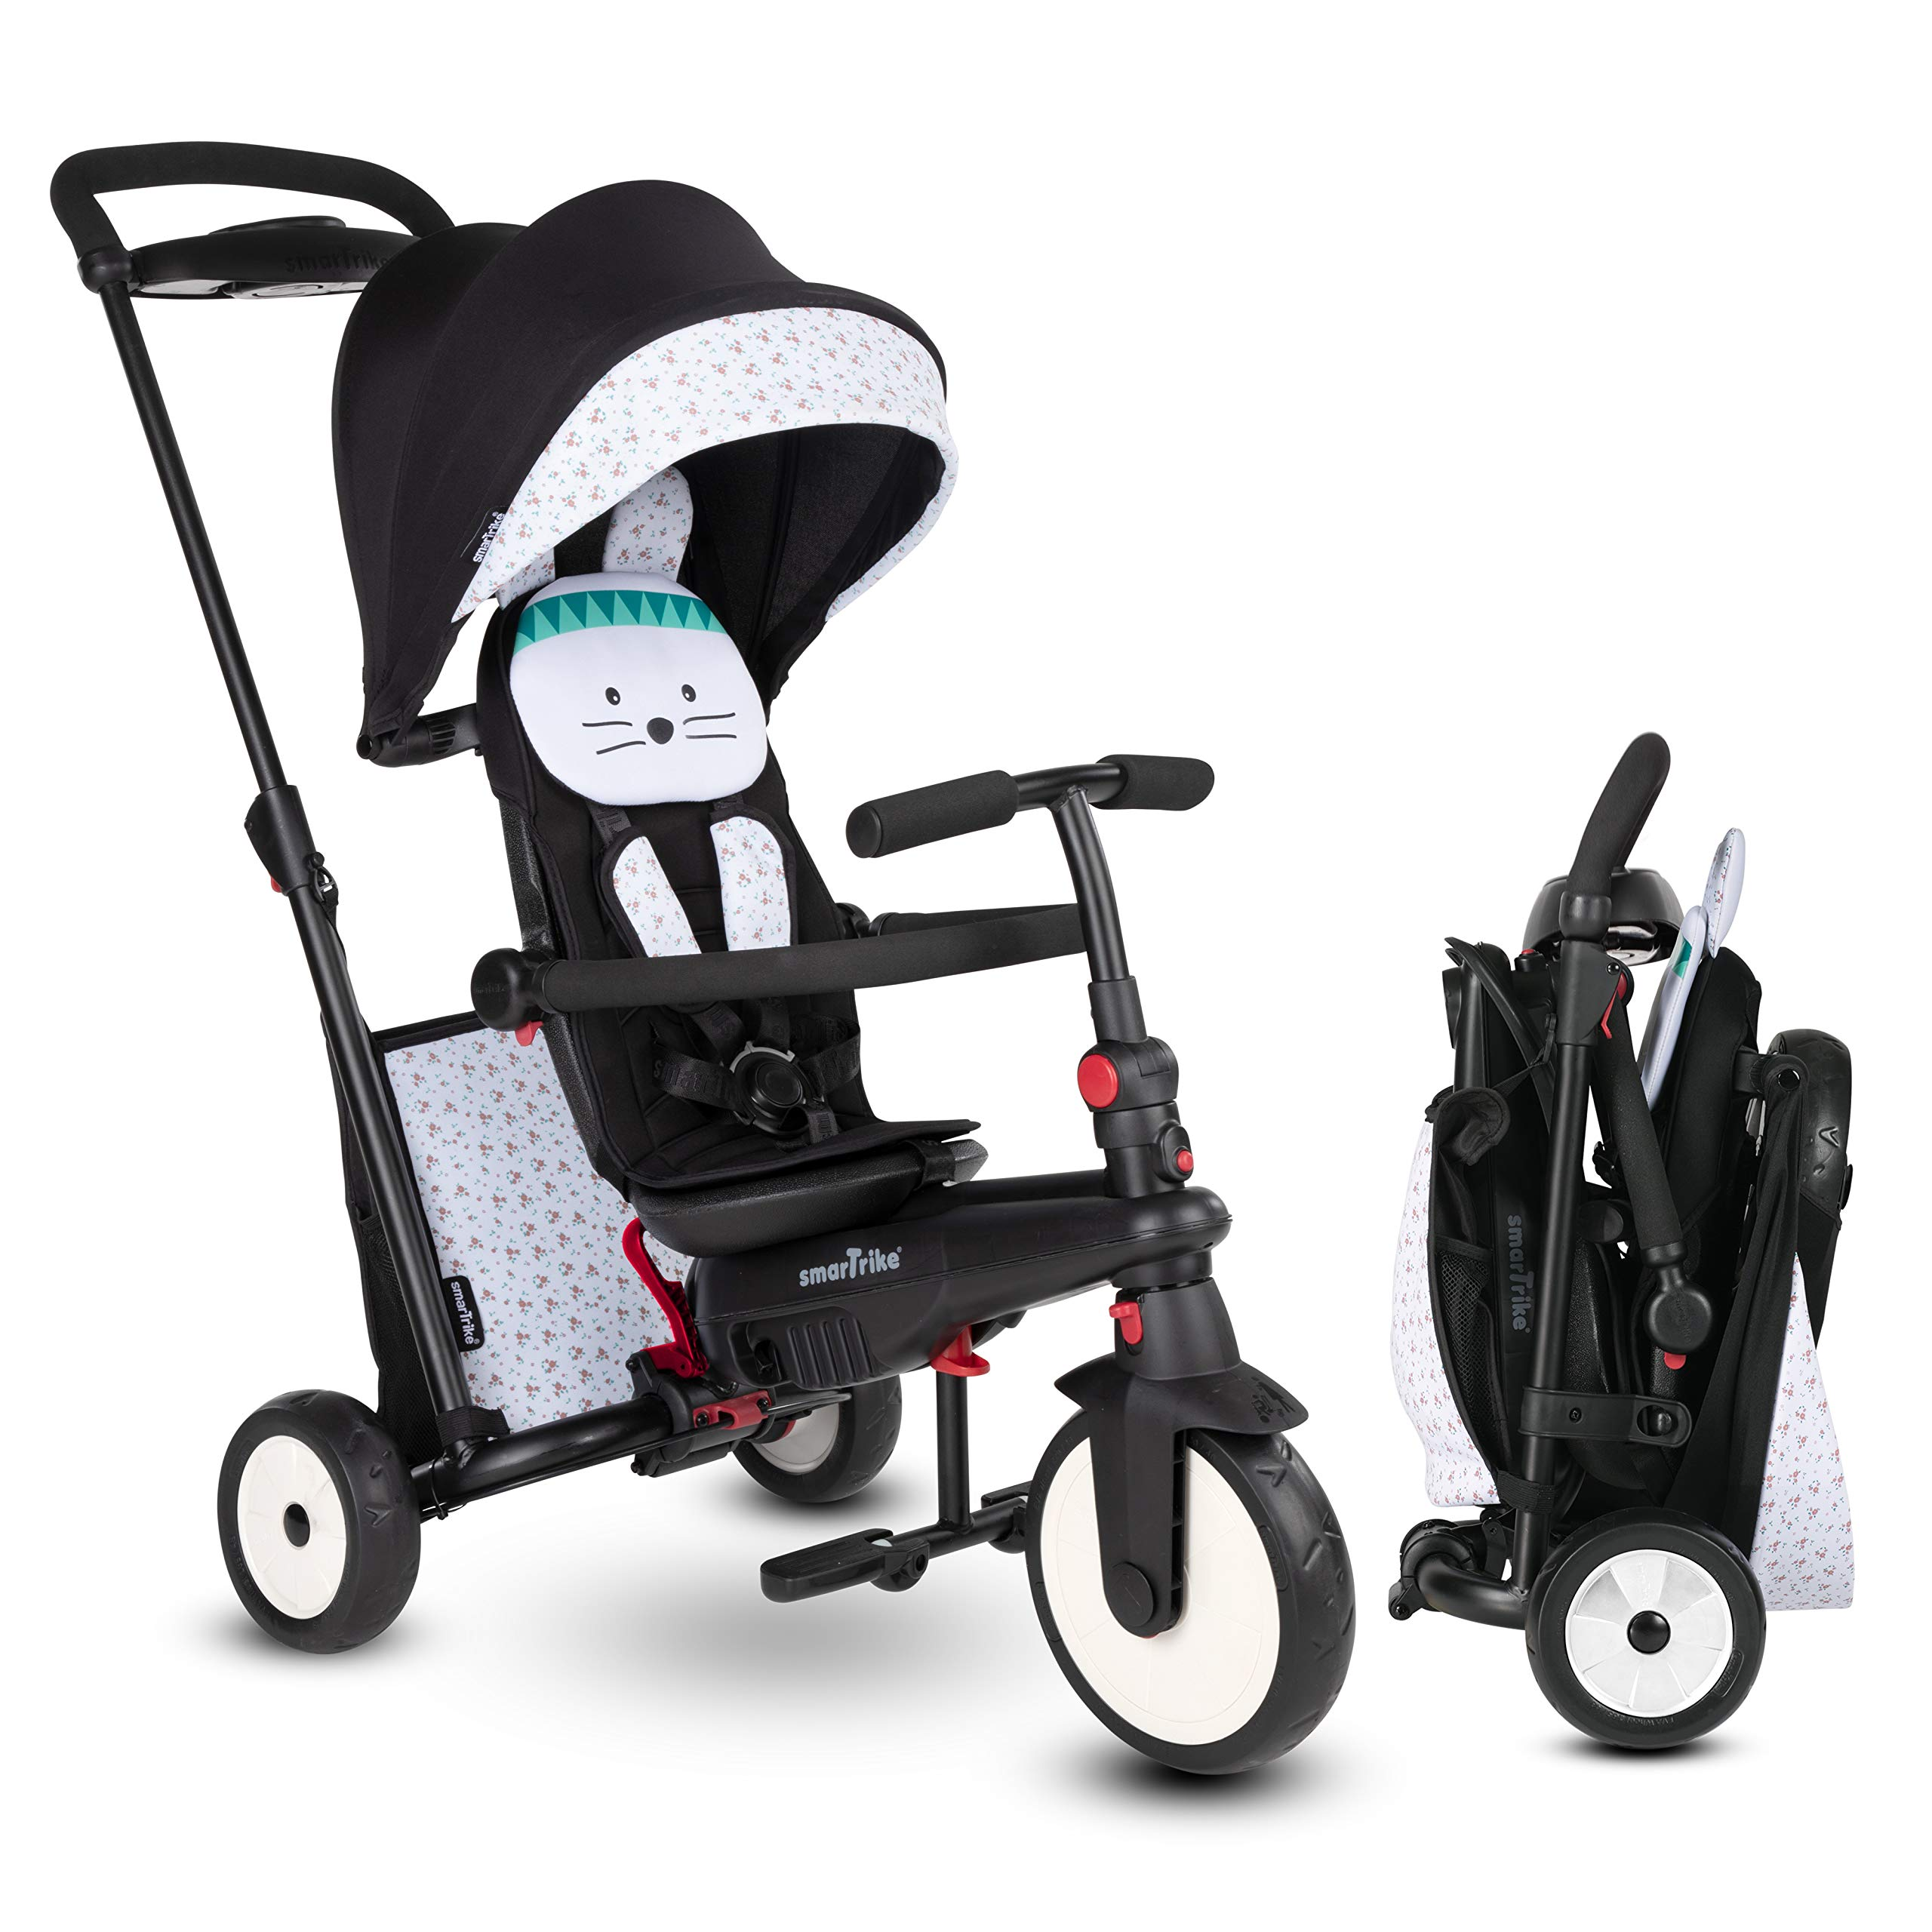 smarTrike STR5 Folding Toddler Tricycle for 1,2,3 Year Old - 7 in 1 Multi-Stage Trike